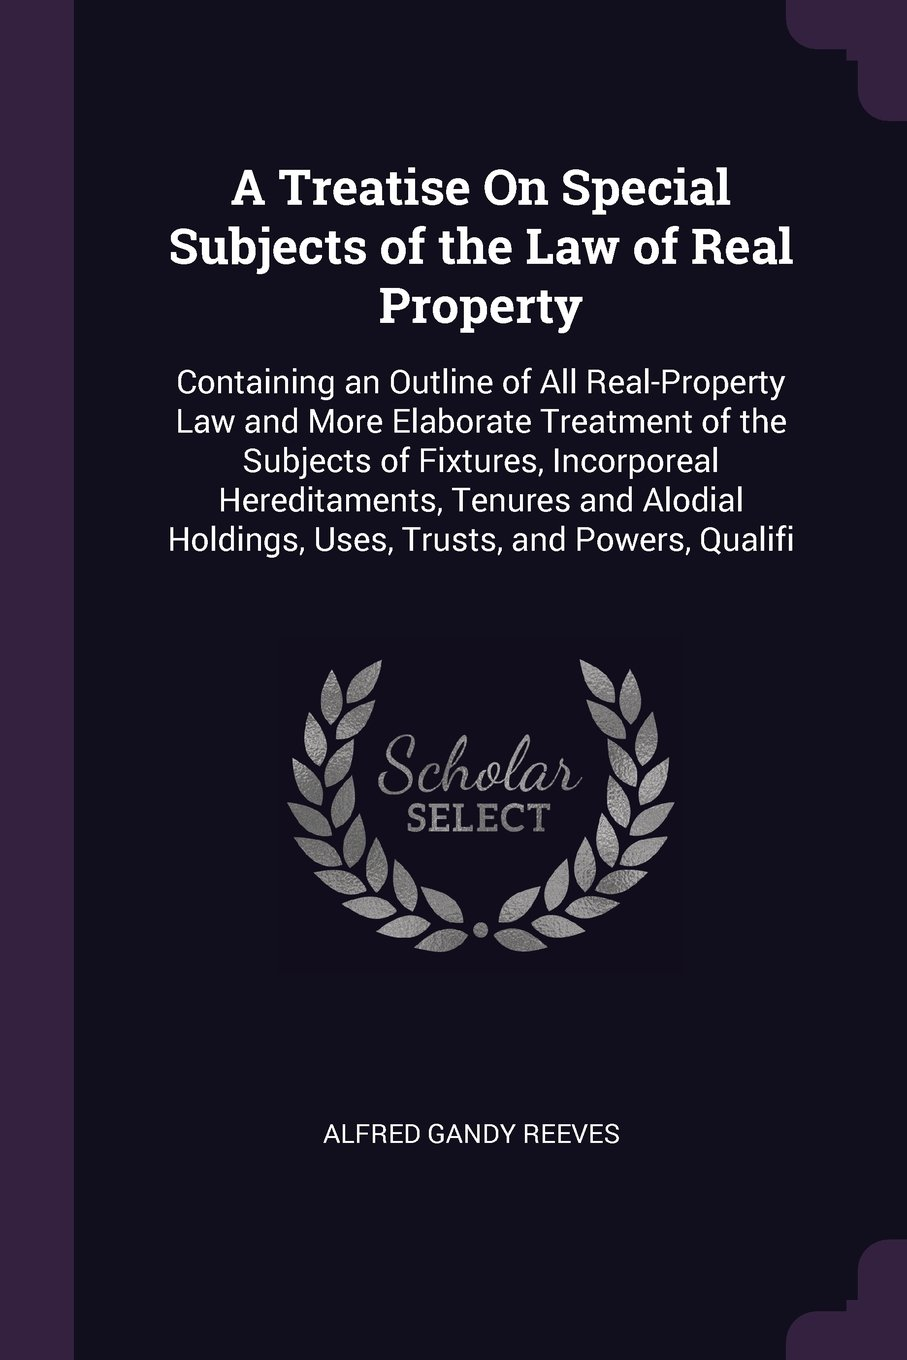 Download A Treatise On Special Subjects of the Law of Real Property: Containing an Outline of All Real-Property Law and More Elaborate Treatment of the ... Holdings, Uses, Trusts, and Powers, Qualifi pdf epub